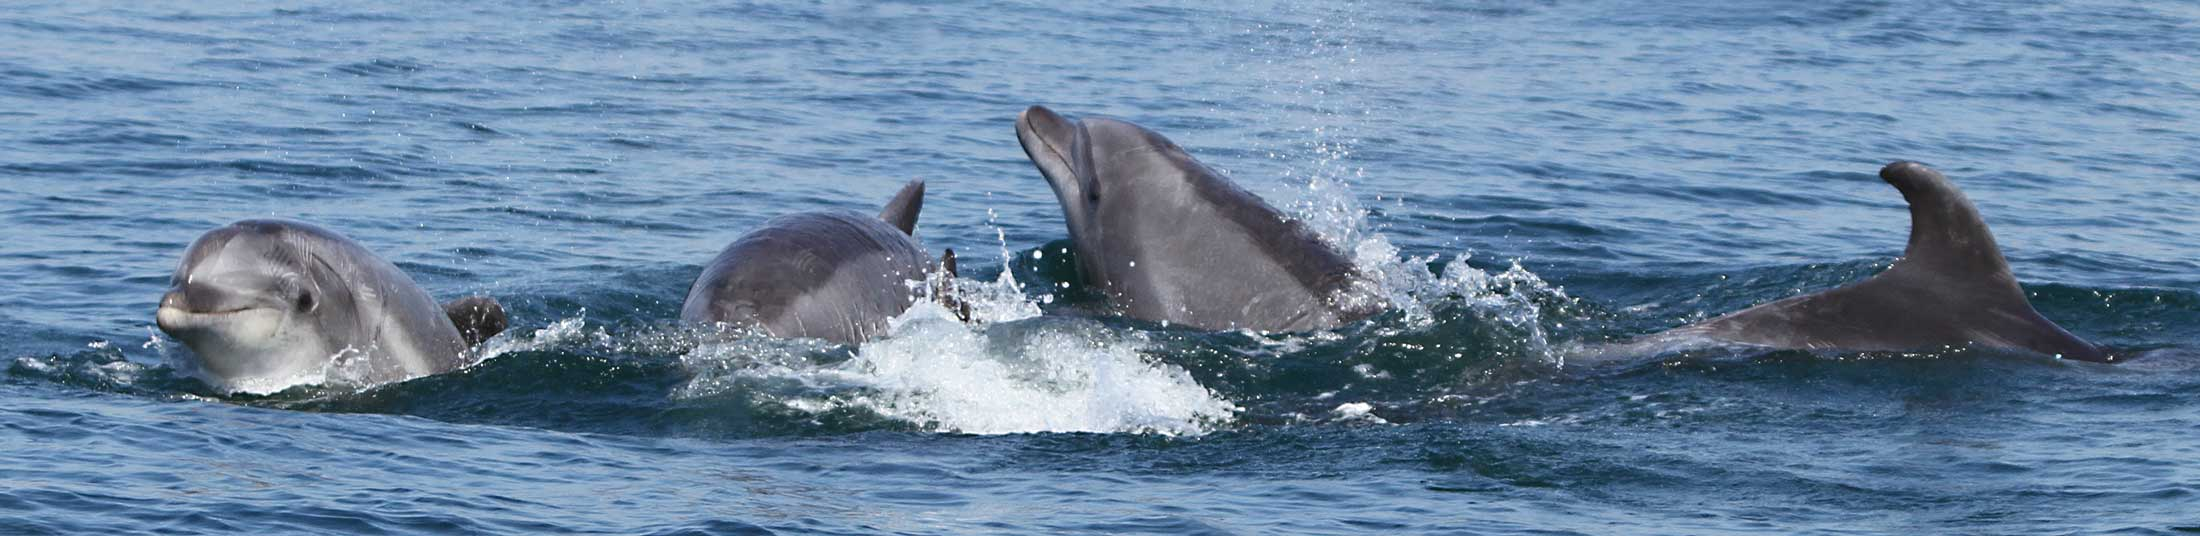 Bottlenose dolphins socializing during an Ocean Conservation Society field research survey